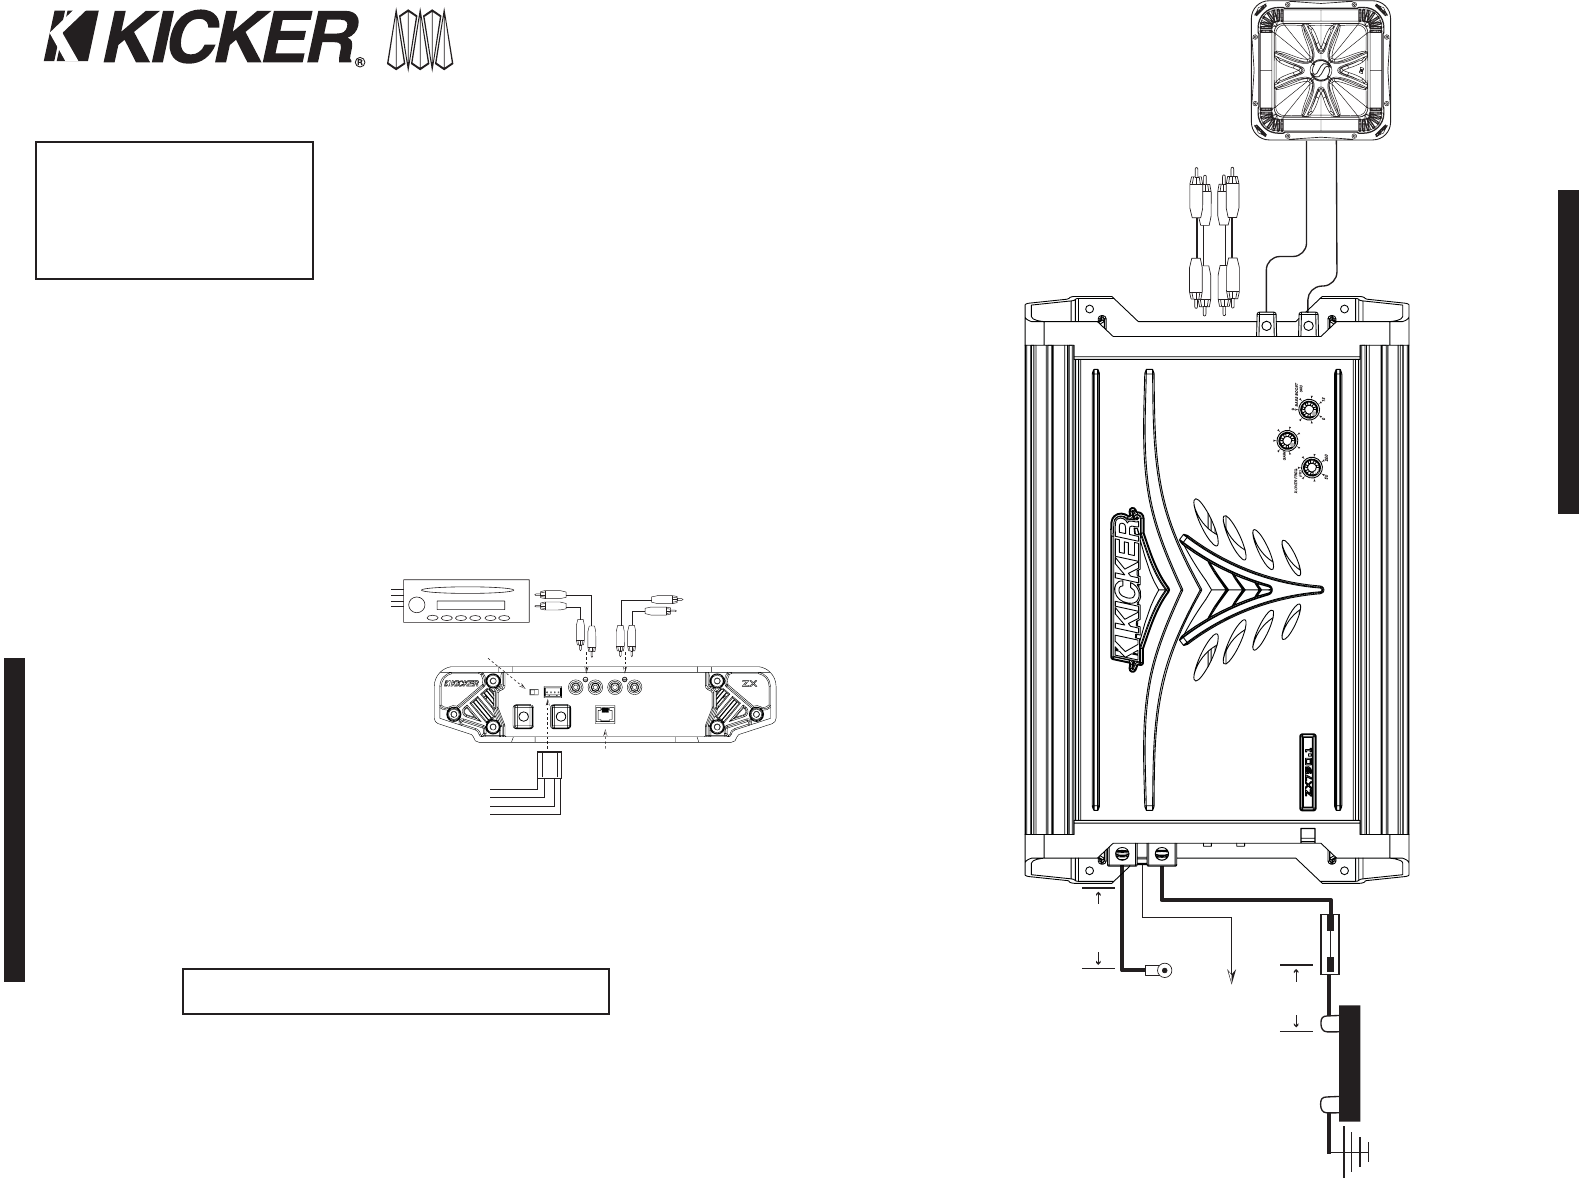 page 2 of kicker stereo amplifier zx400 1 user guide manualsonline com rh audio manualsonline com zx300.1 kicker amp manual kicker 250.1 amp manual